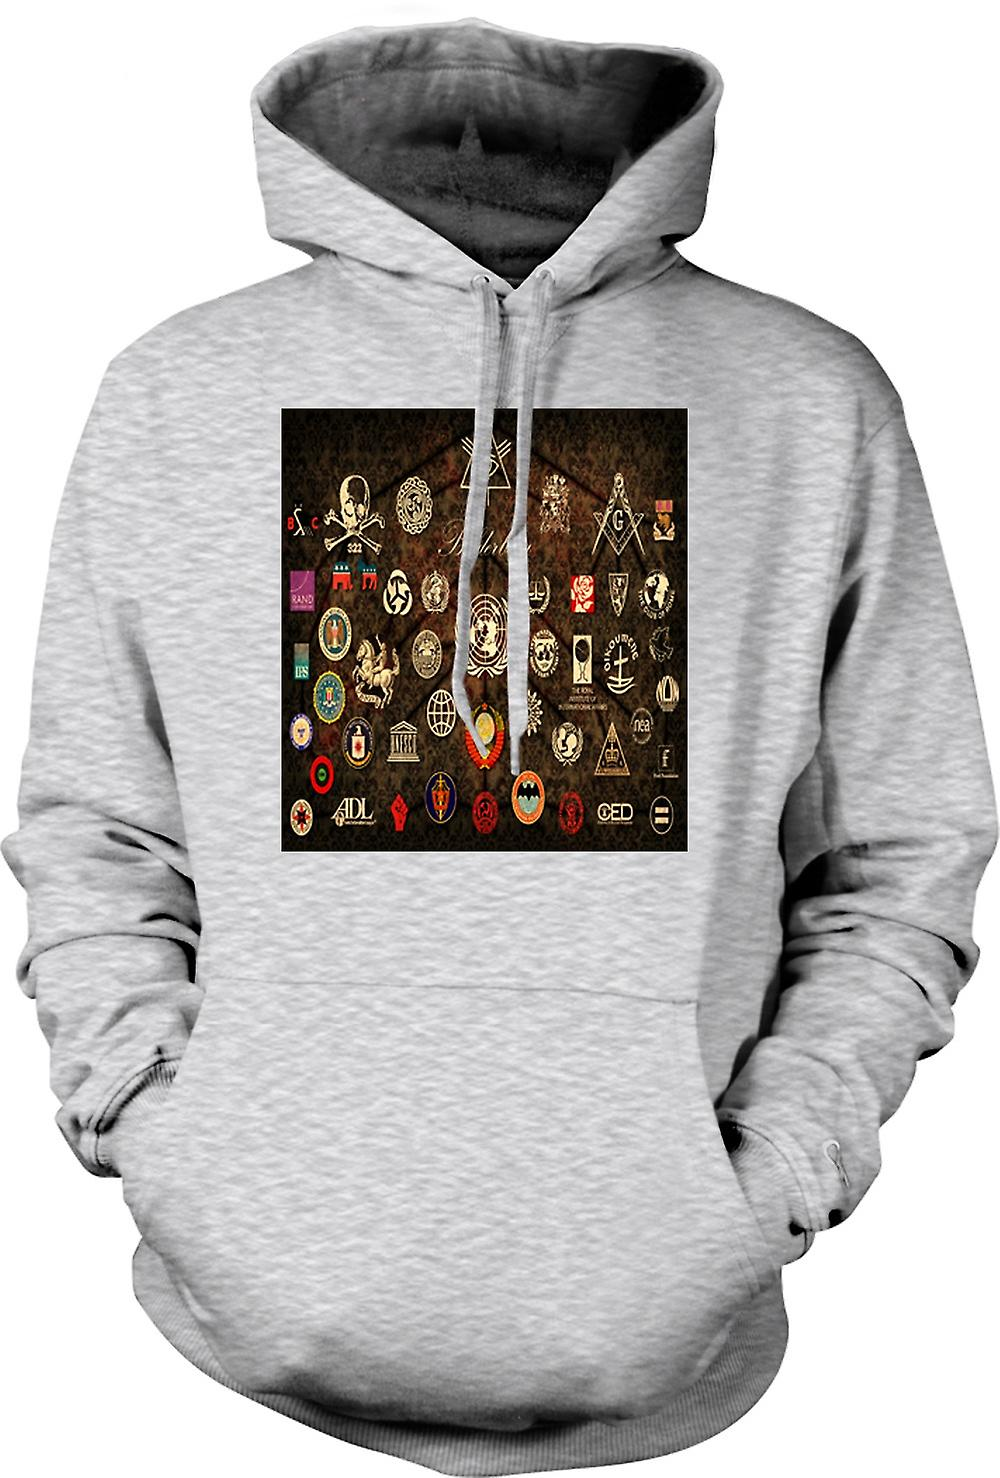 Mens Hoodie - Conspiracy Collage - Bildenberg , NSA, BG